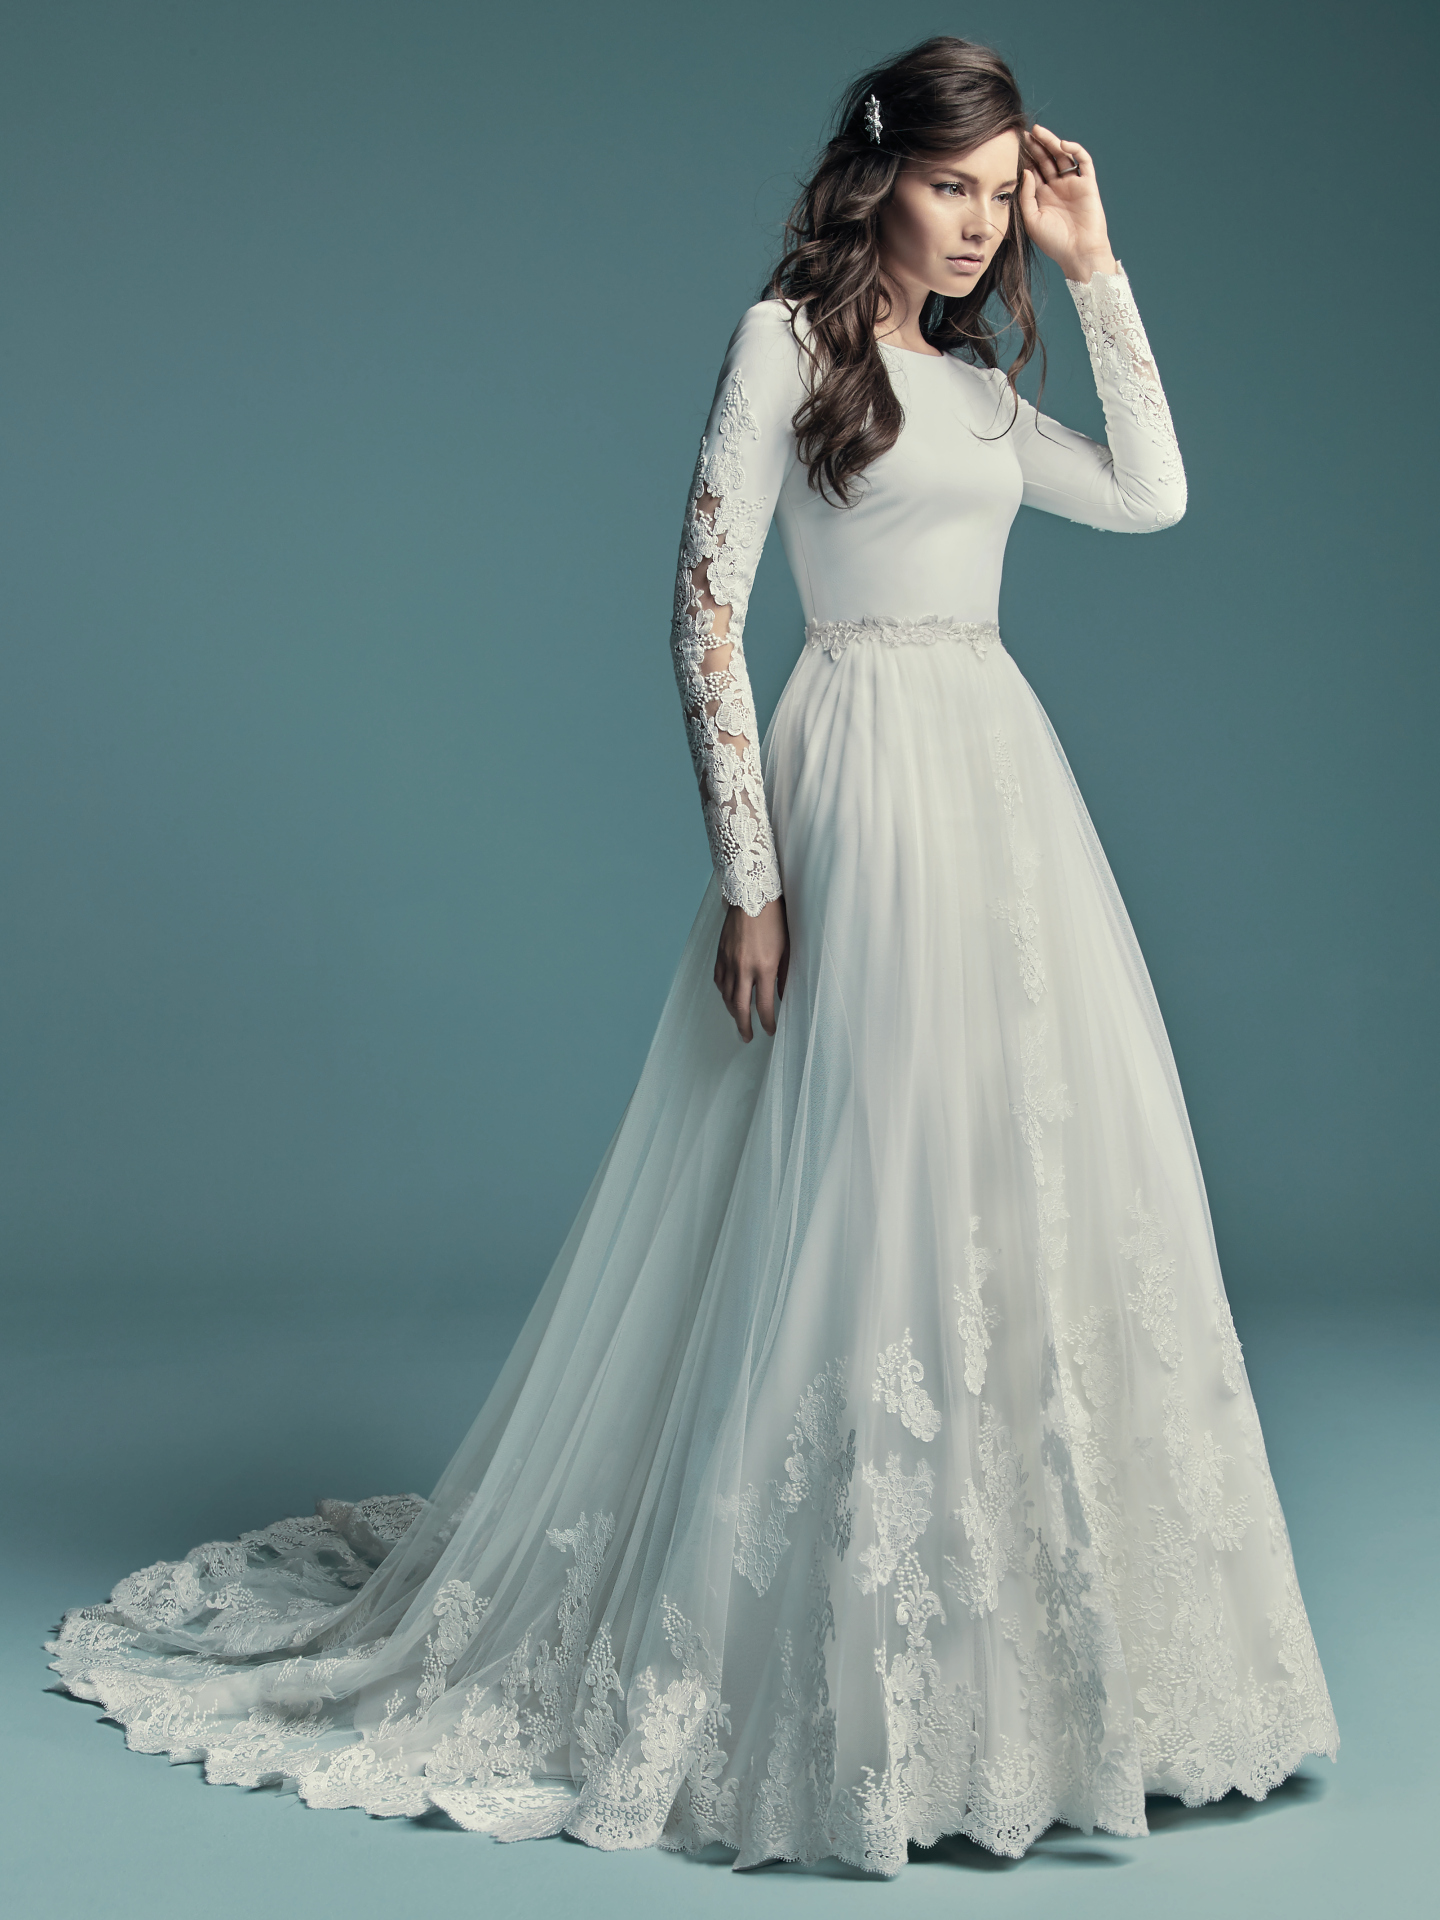 Favorite Sleeved Wedding dresses - Simple wedding dress Olyssia with overskirt by Maggie Sottero